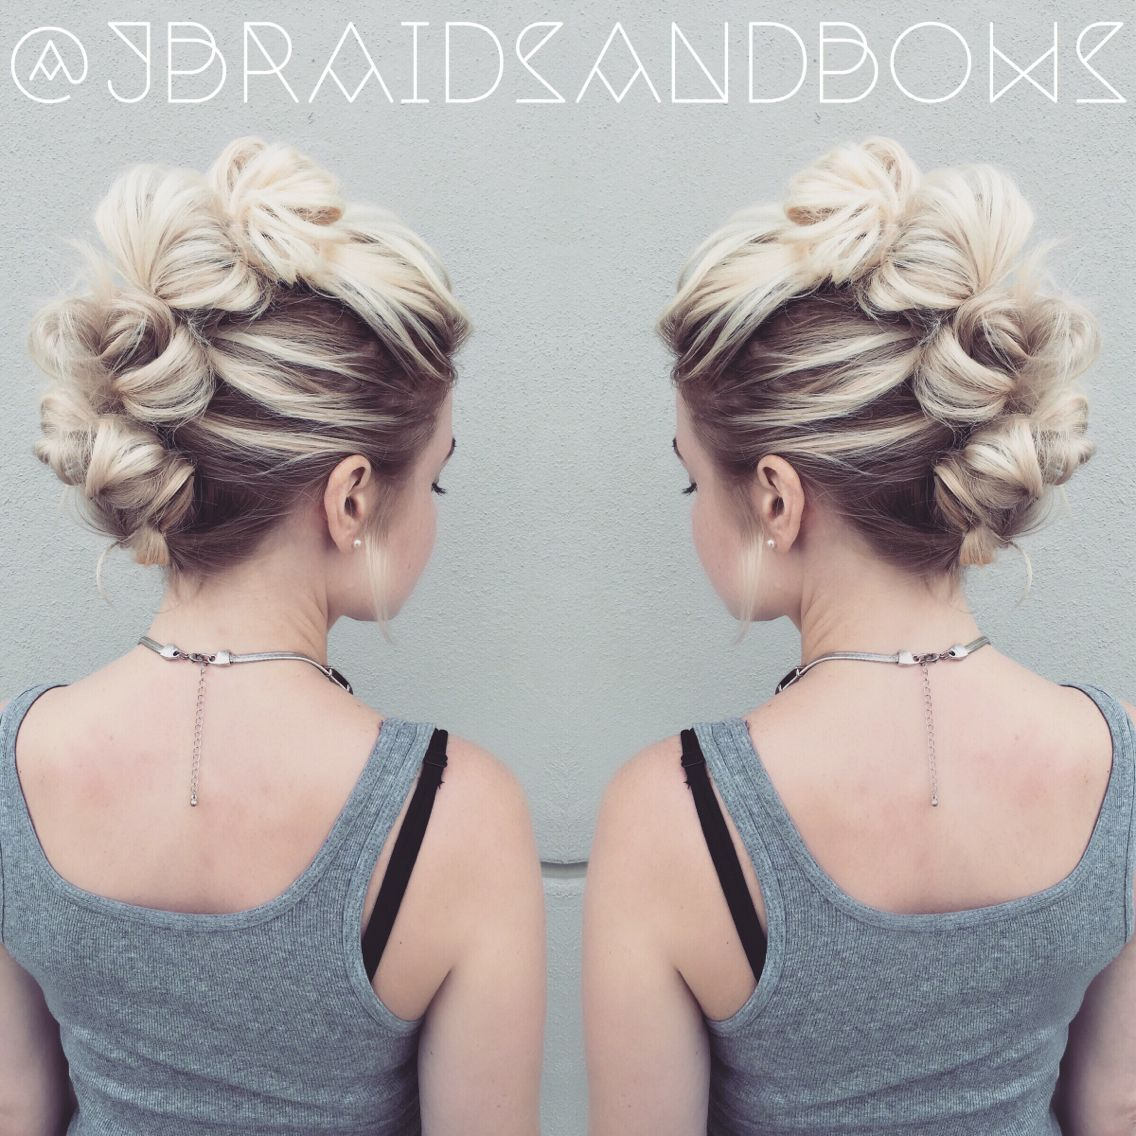 Jbraidsandbows peinados pinterest hair style updos and makeup